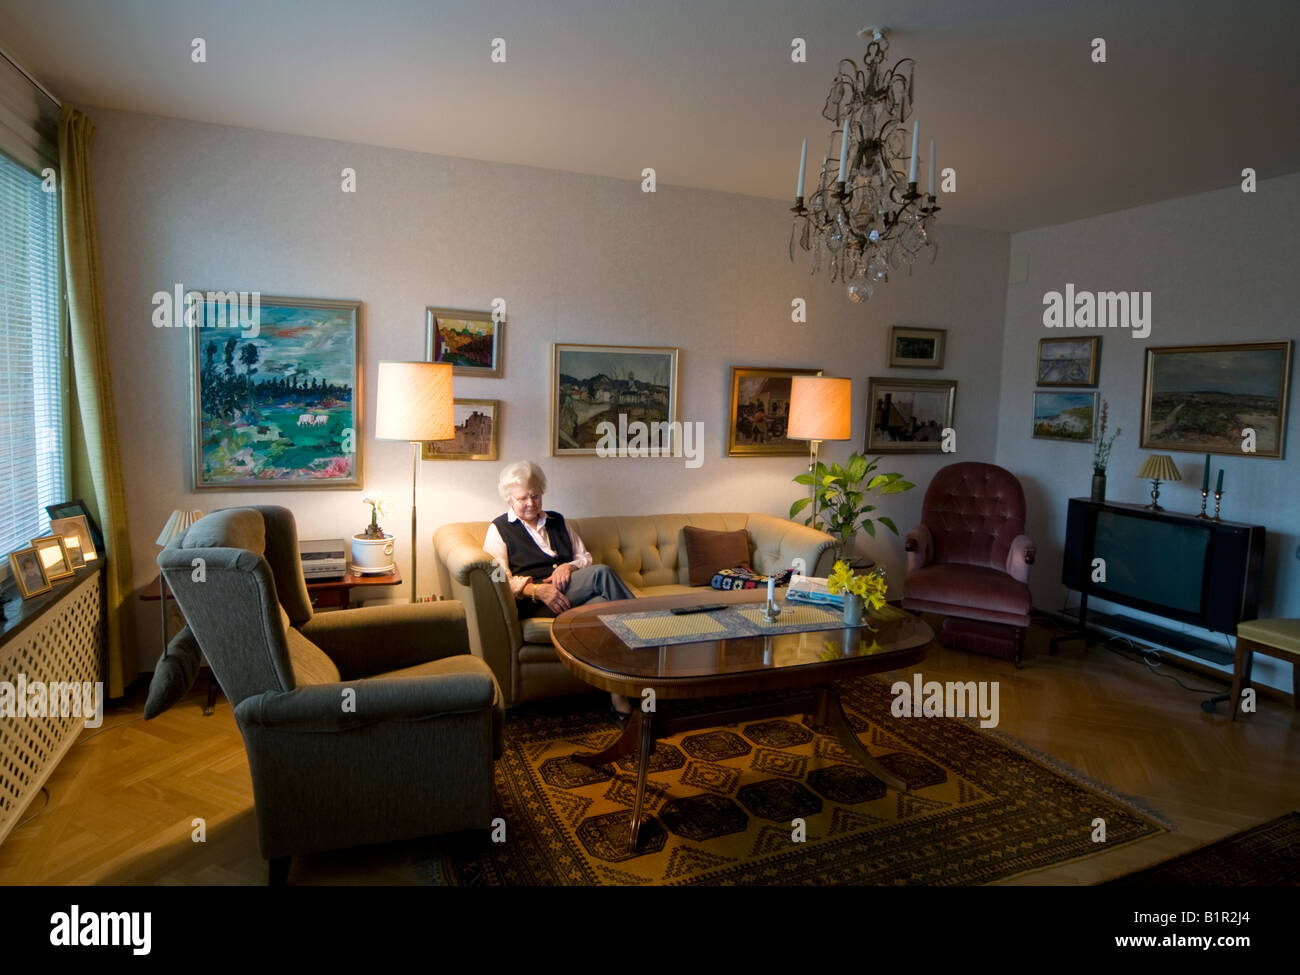 Old woman in her living room - Stock Image